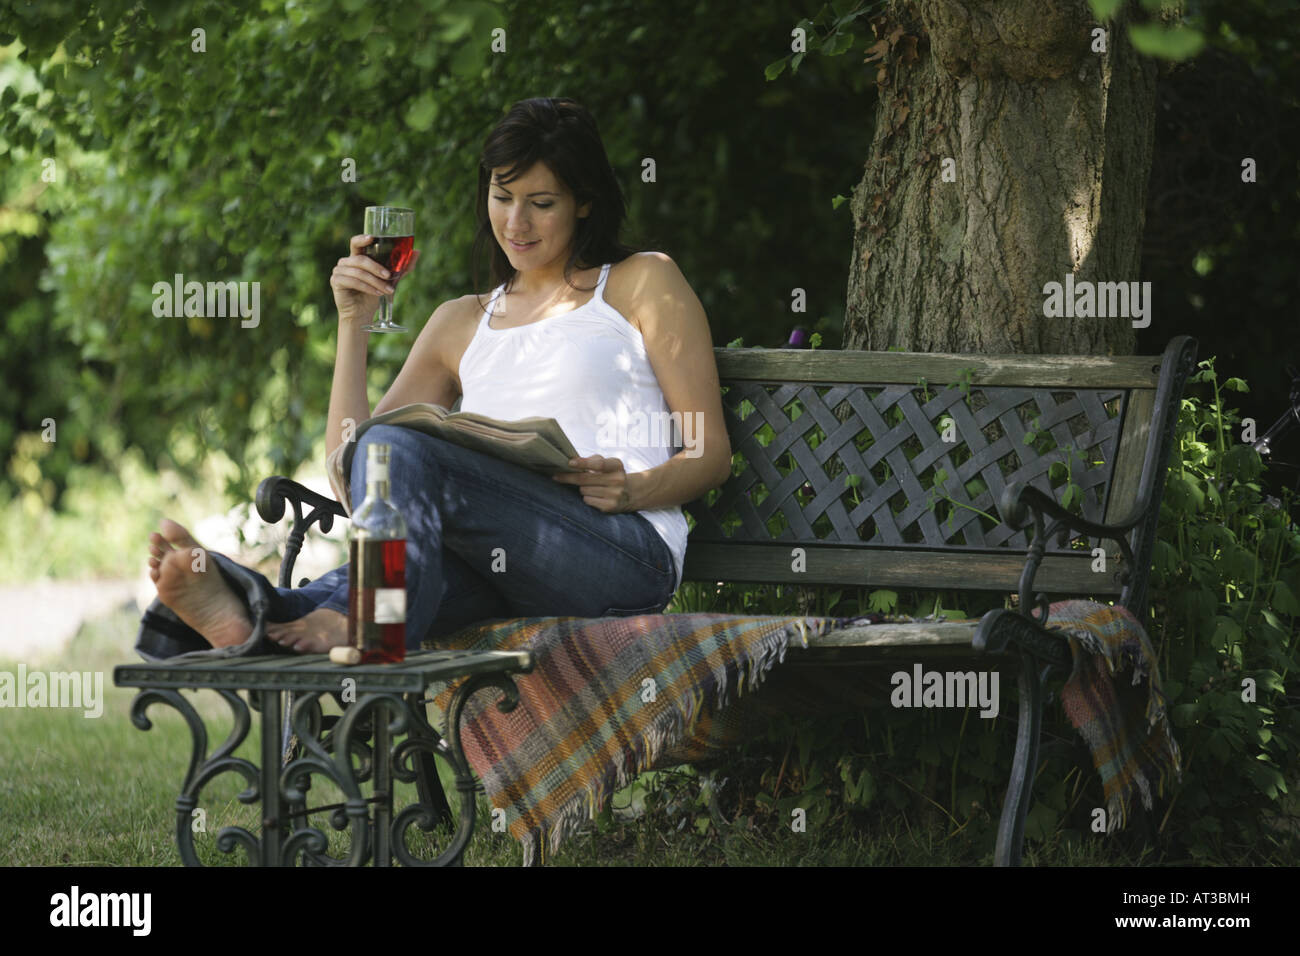 A woman sitting in the garden holding a glass of wine and reading a newspaper - Stock Image